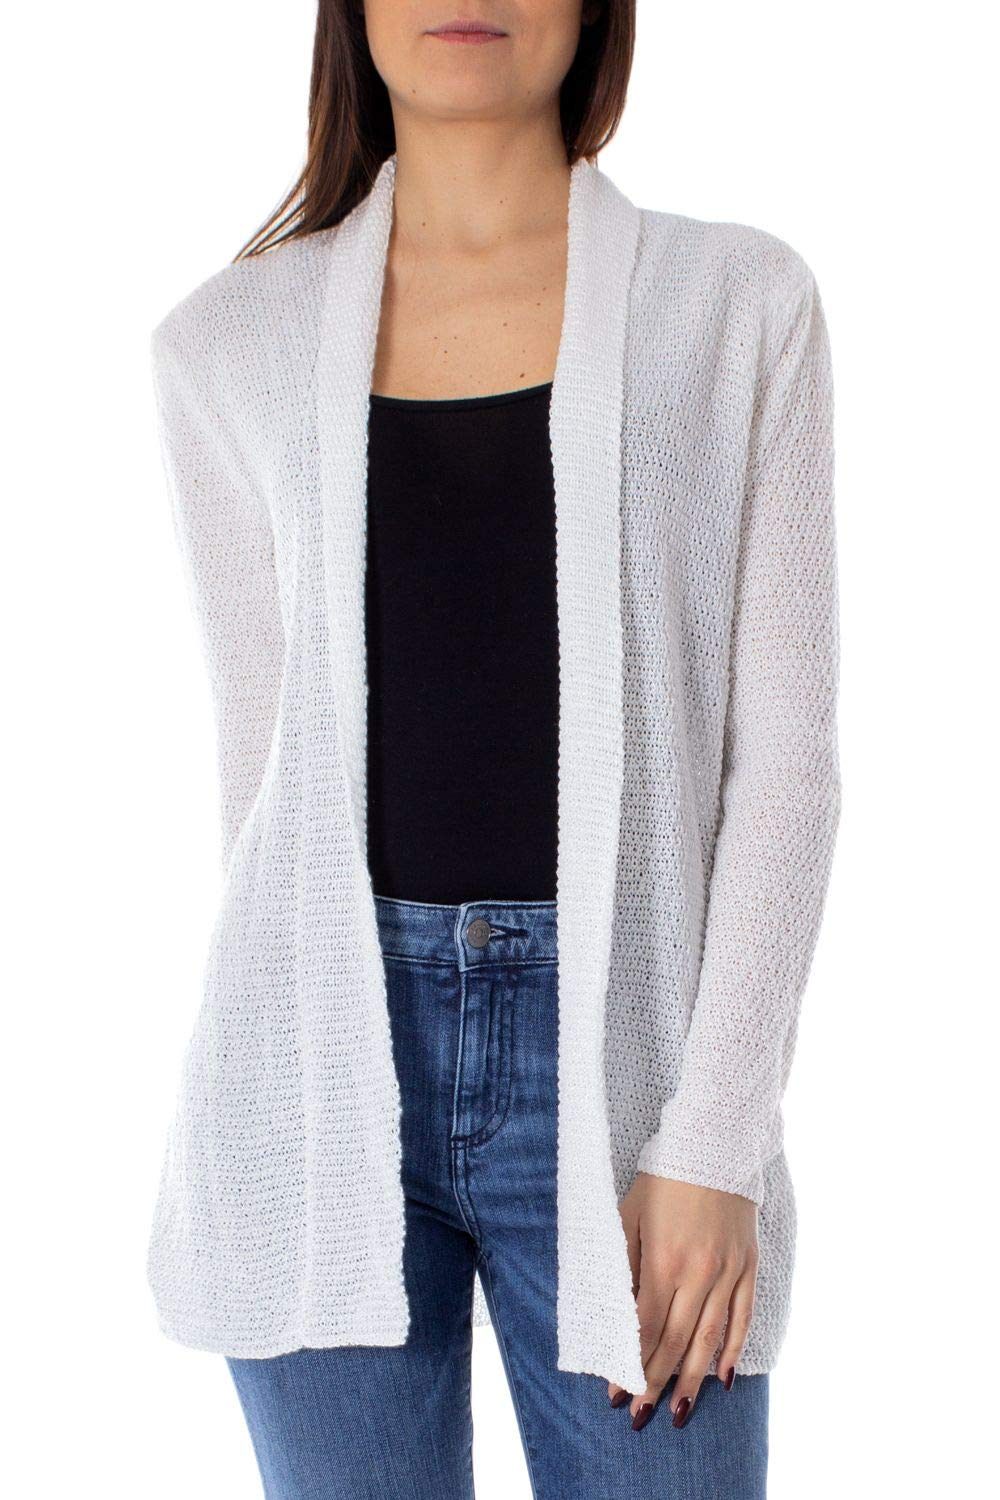 One.0 Women's OZ17WHITE White Acrylic Cardigan